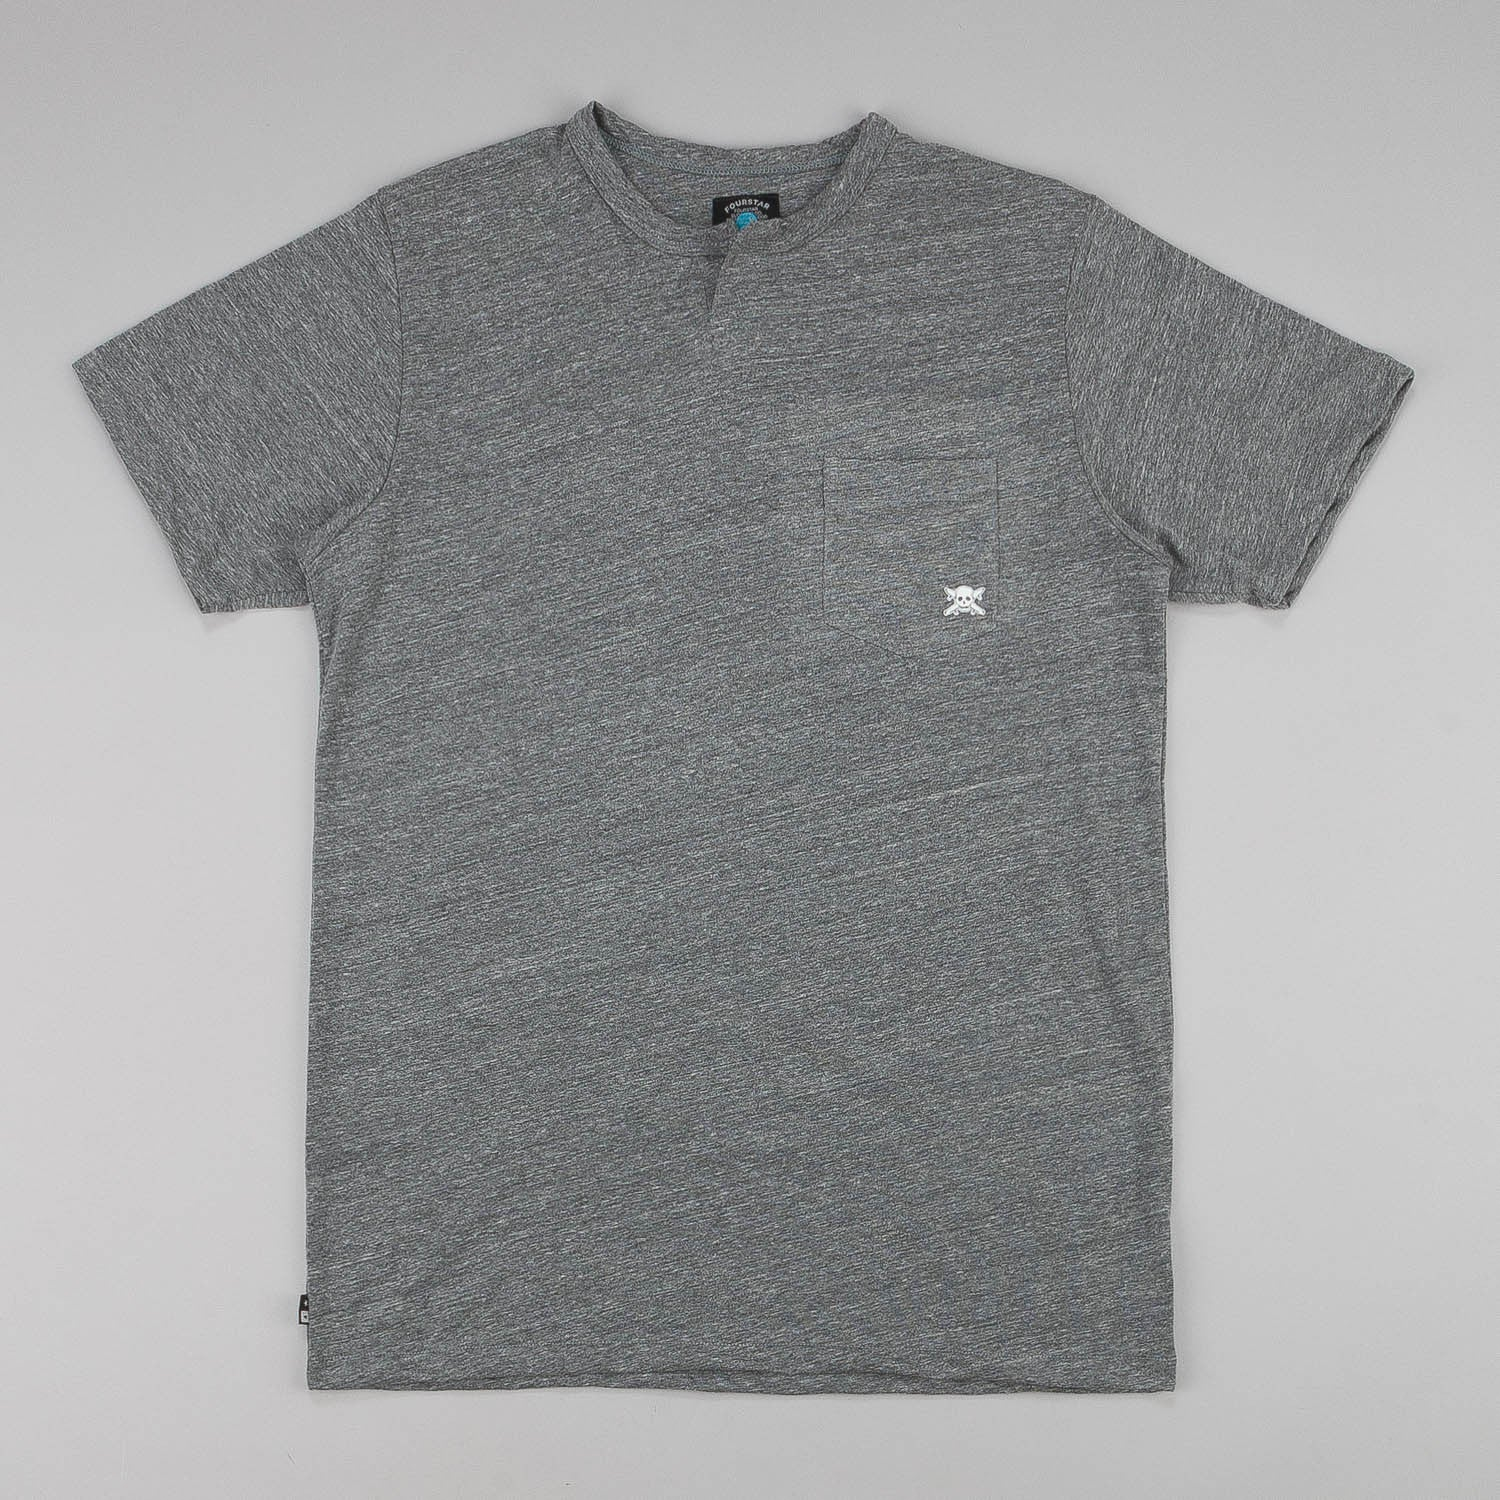 Fourstar Pirate Crew Pocket T-Shirt